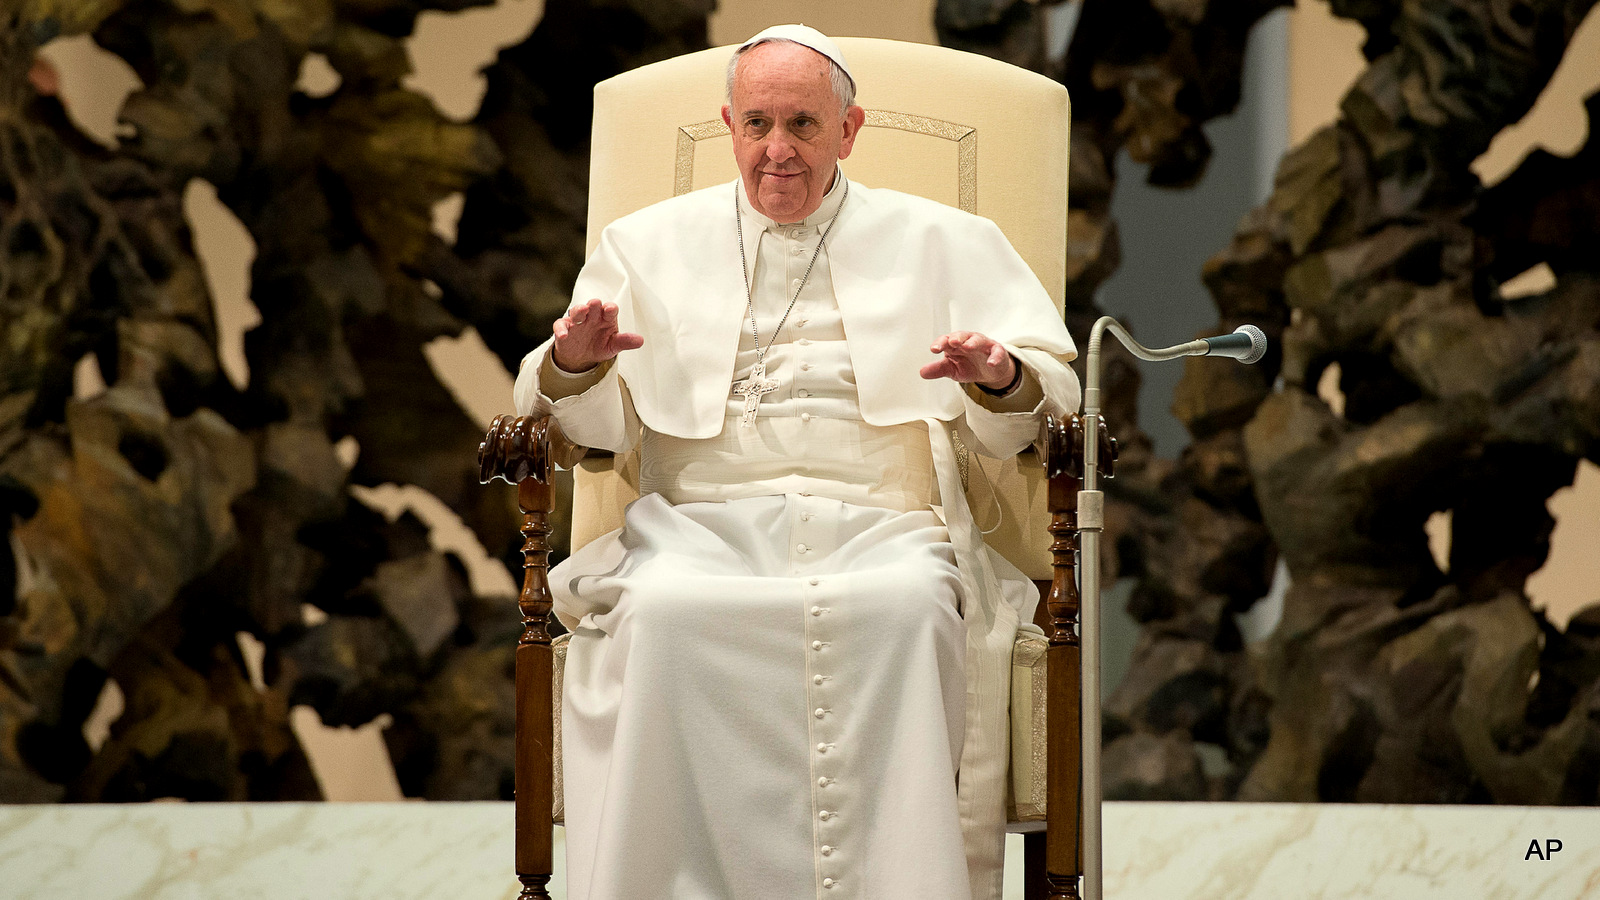 Vatican Caught Using Charity Donations To Cover Budget Shortfalls…